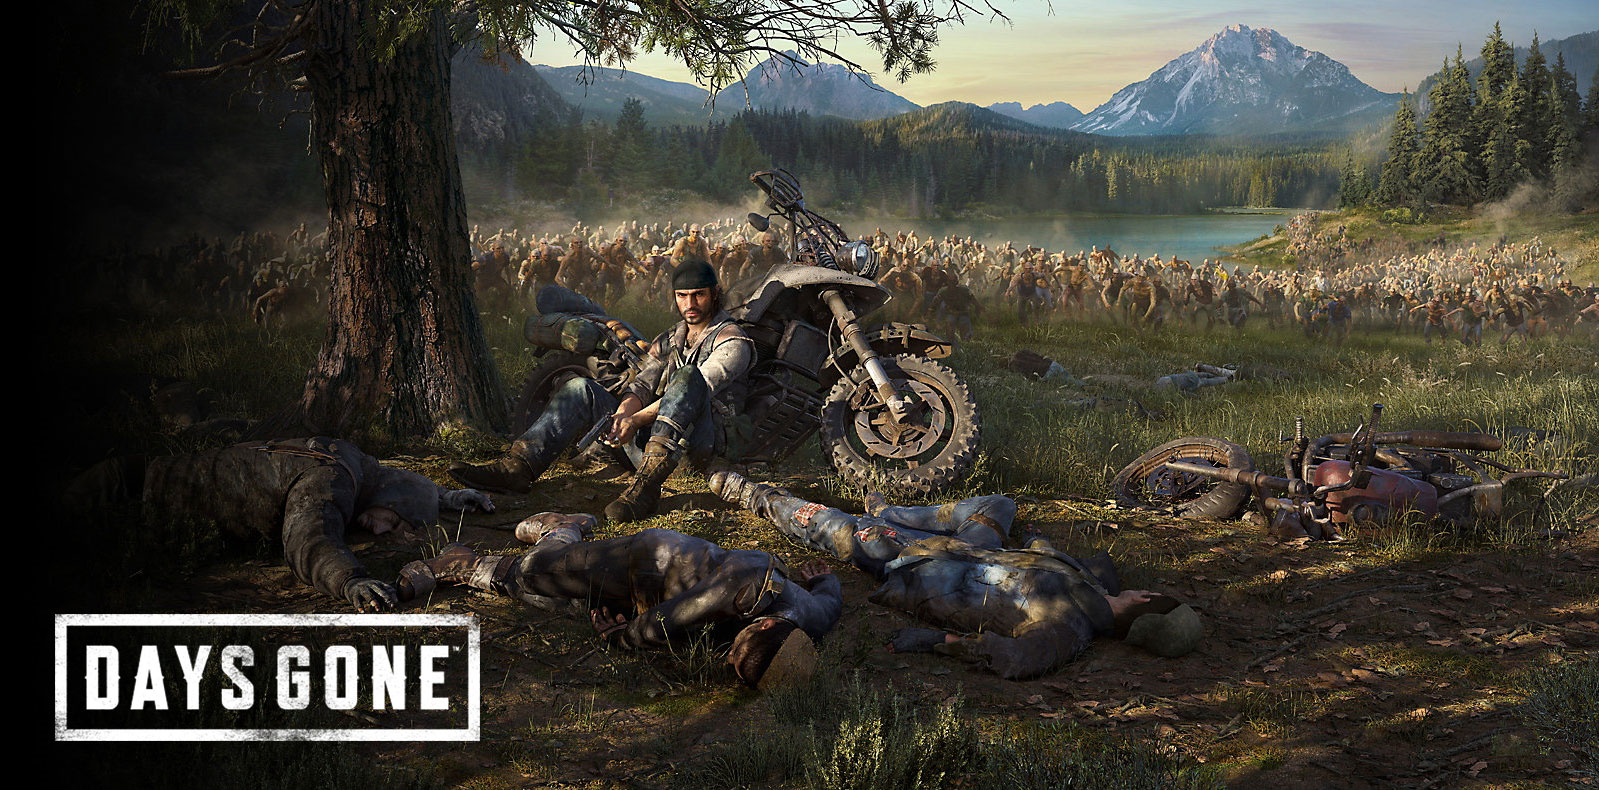 Days Gone- PS4 Exclusive Game